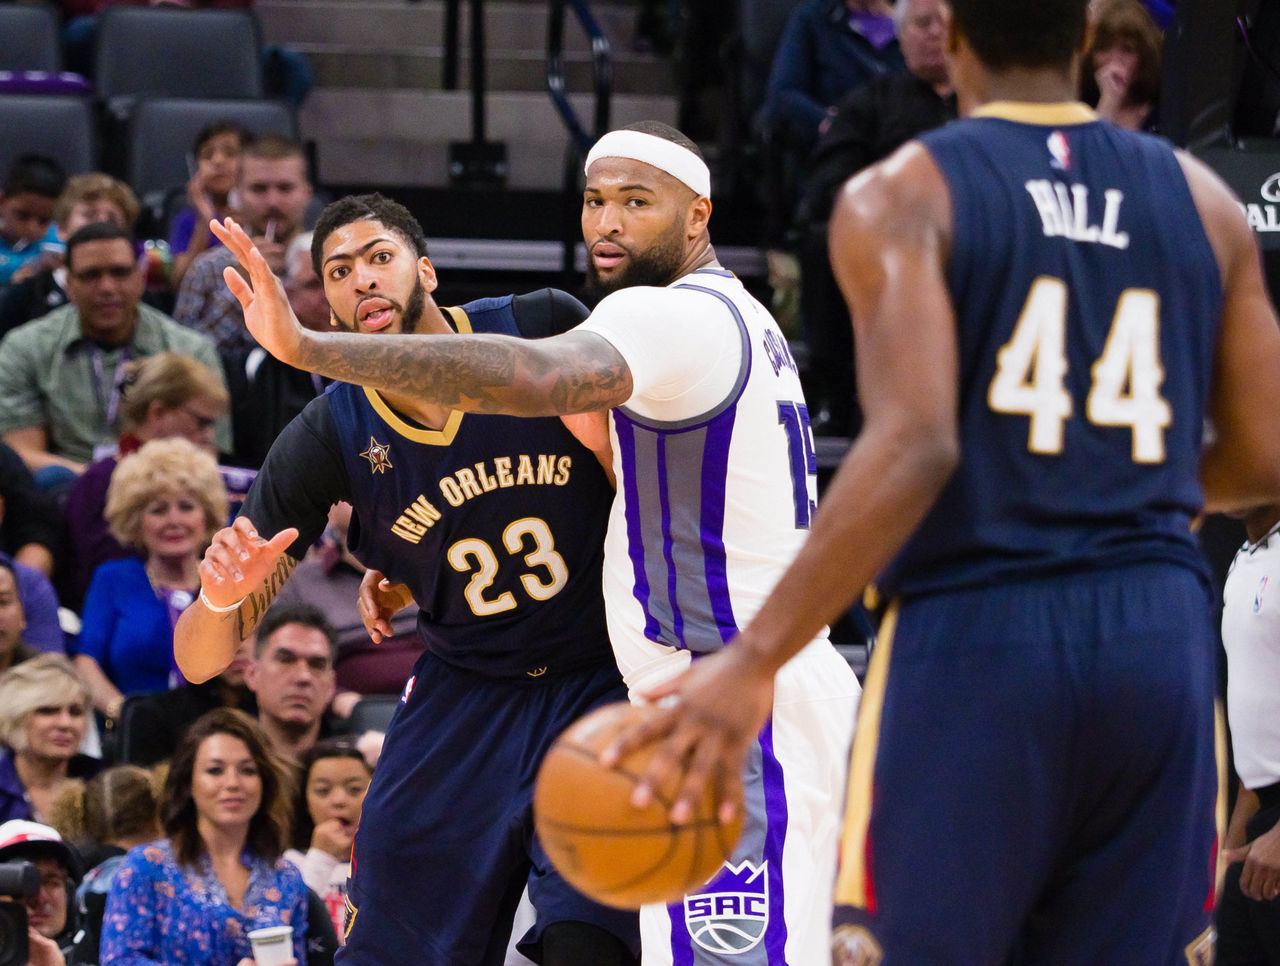 Cropped 2017 02 13t045549z 1644851165 nocid rtrmadp 3 nba new orleans pelicans at sacramento kings